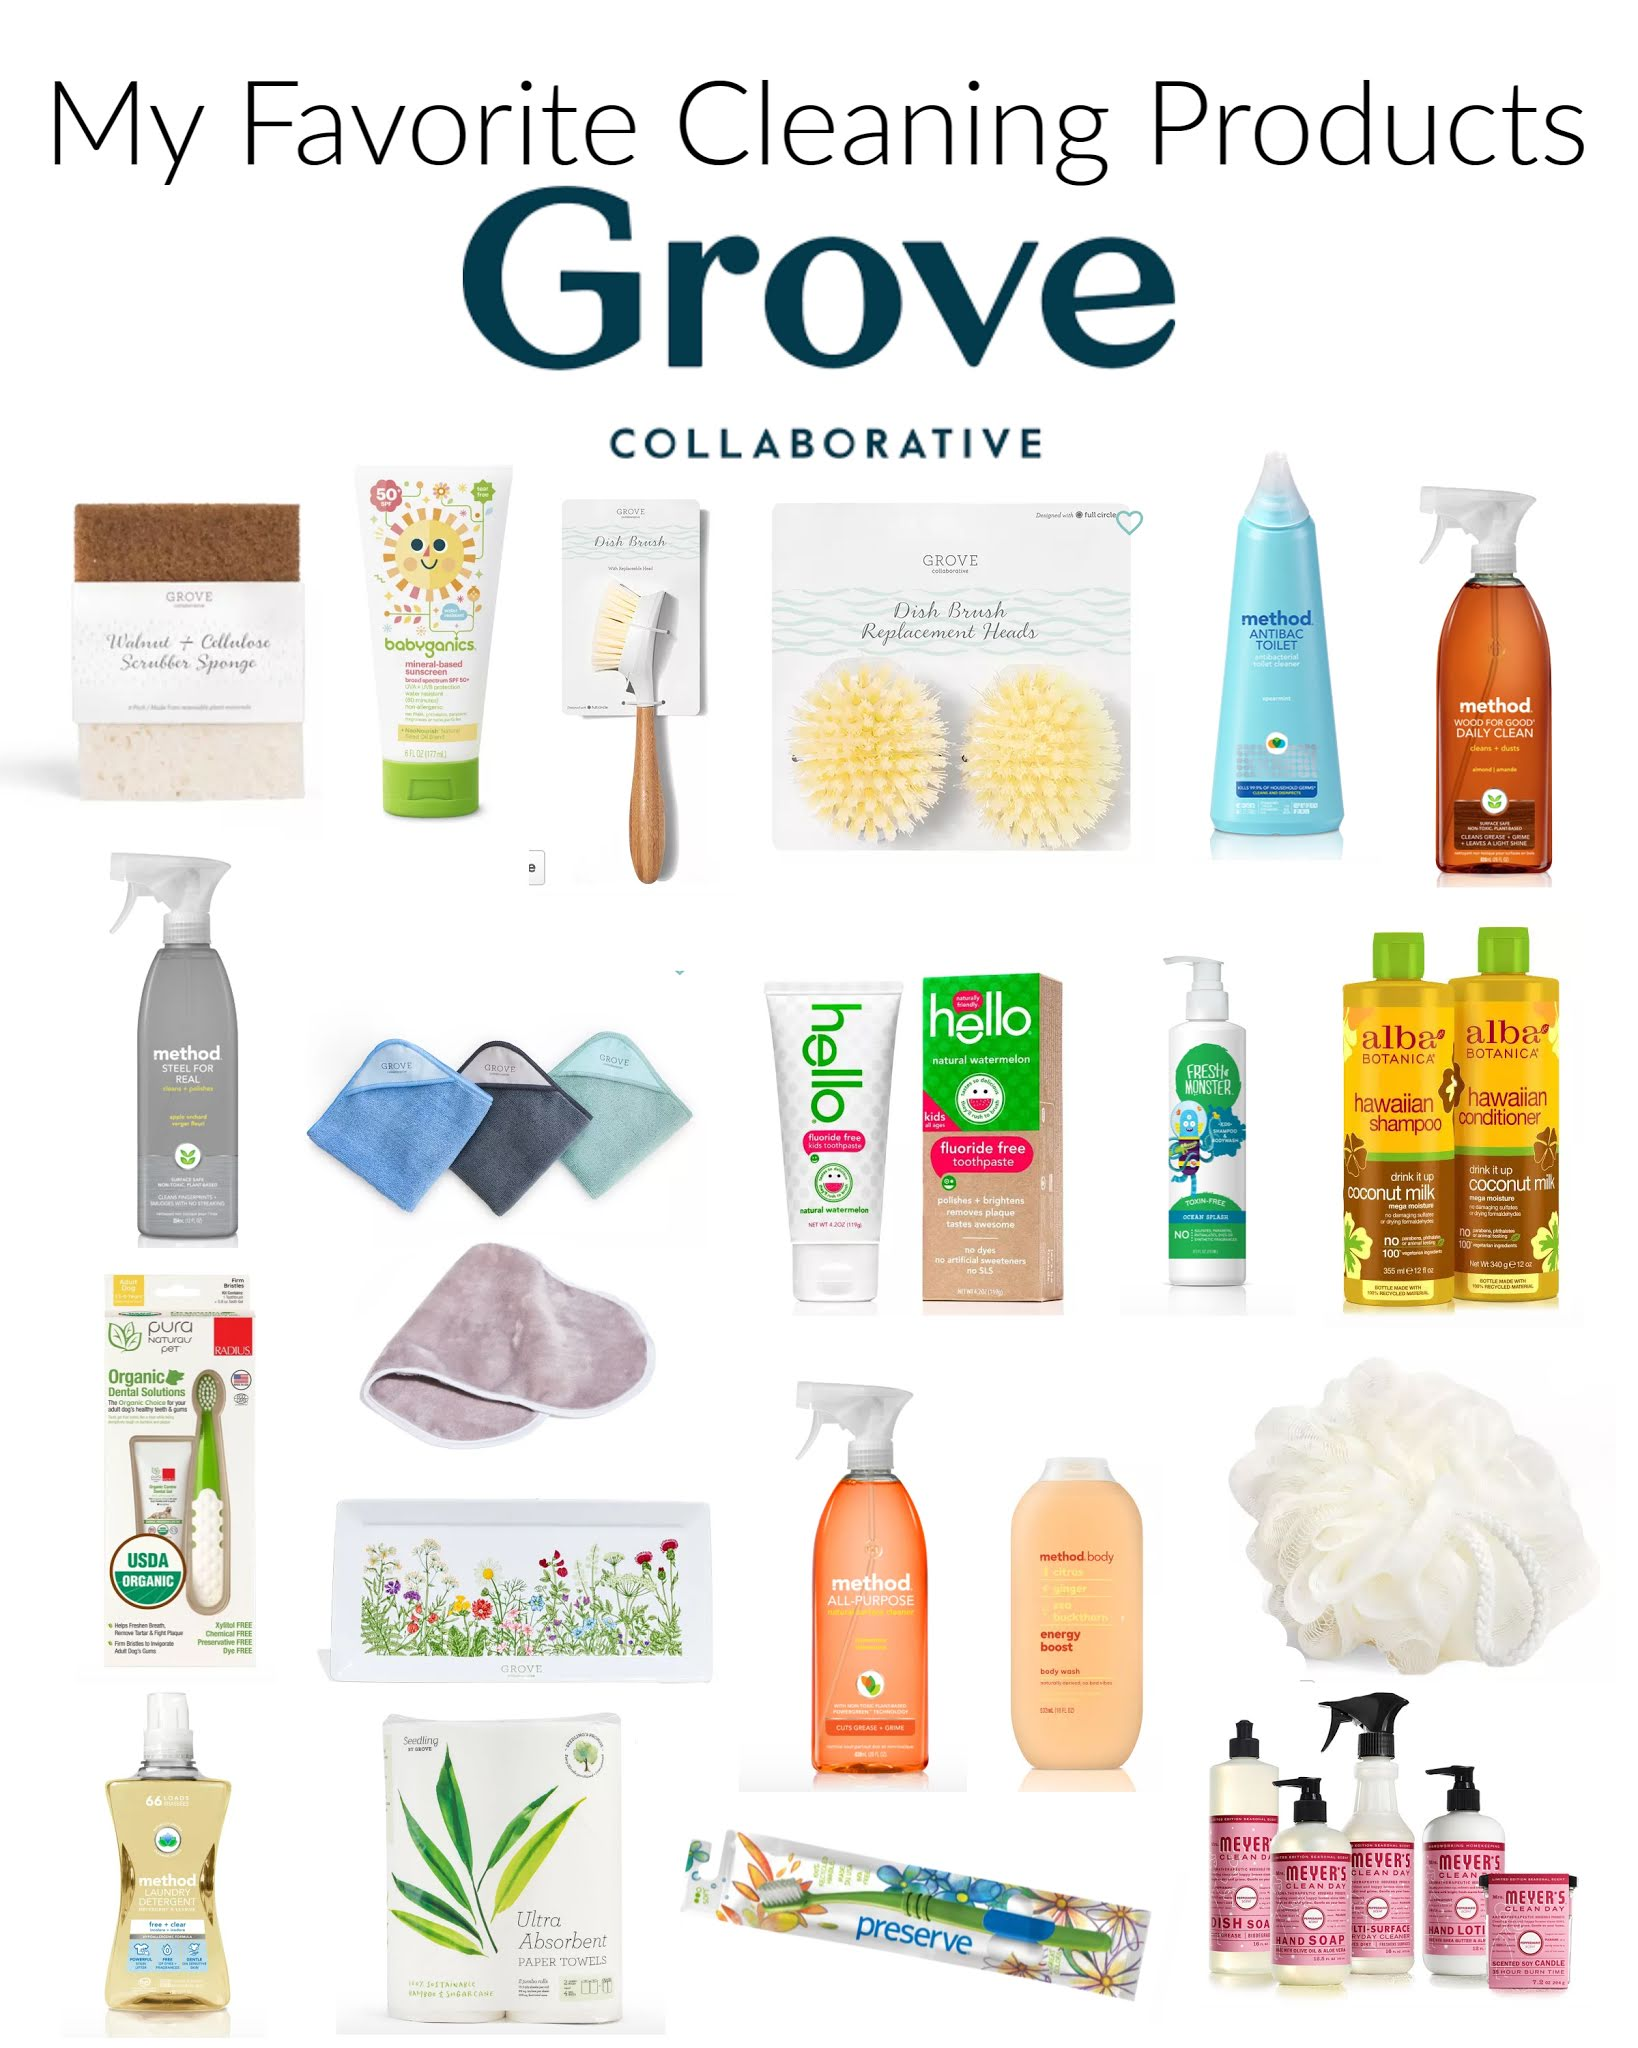 Grove collaborative products. The best grove collaborative products. The best cleaning products. Safe cleaning products for kids. Safe cleaning products to use in your home. The best all natural cleaners. Free mrs meyers gift set. The best mrs Meyers products. #cleaning #clean #home #organic #allnatural #family